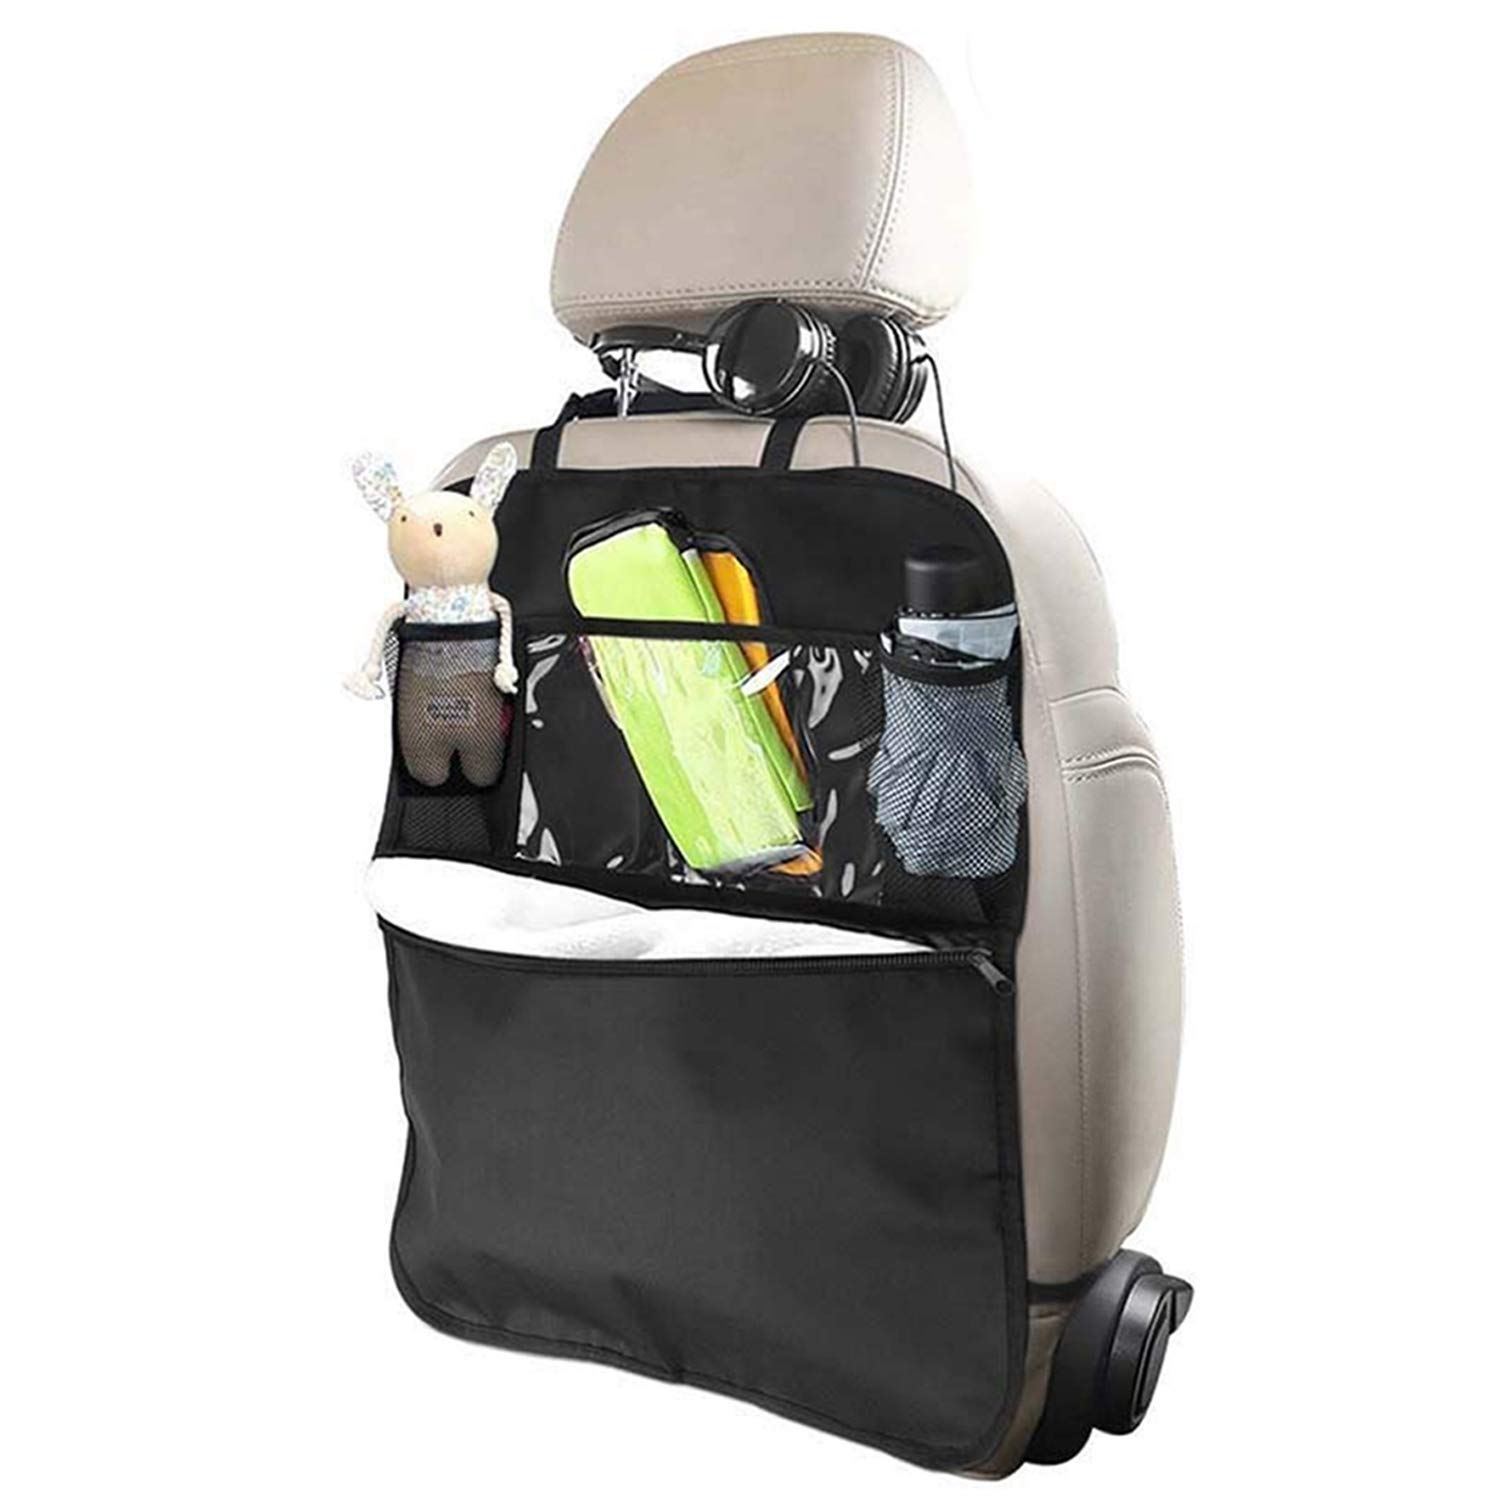 SAVORLIVING Car Back Seat Organizer Large Storage Organizer with Clear iPad Holder Cup Holder Durable Space-saving Bag for Travel Accessories Kids Toys